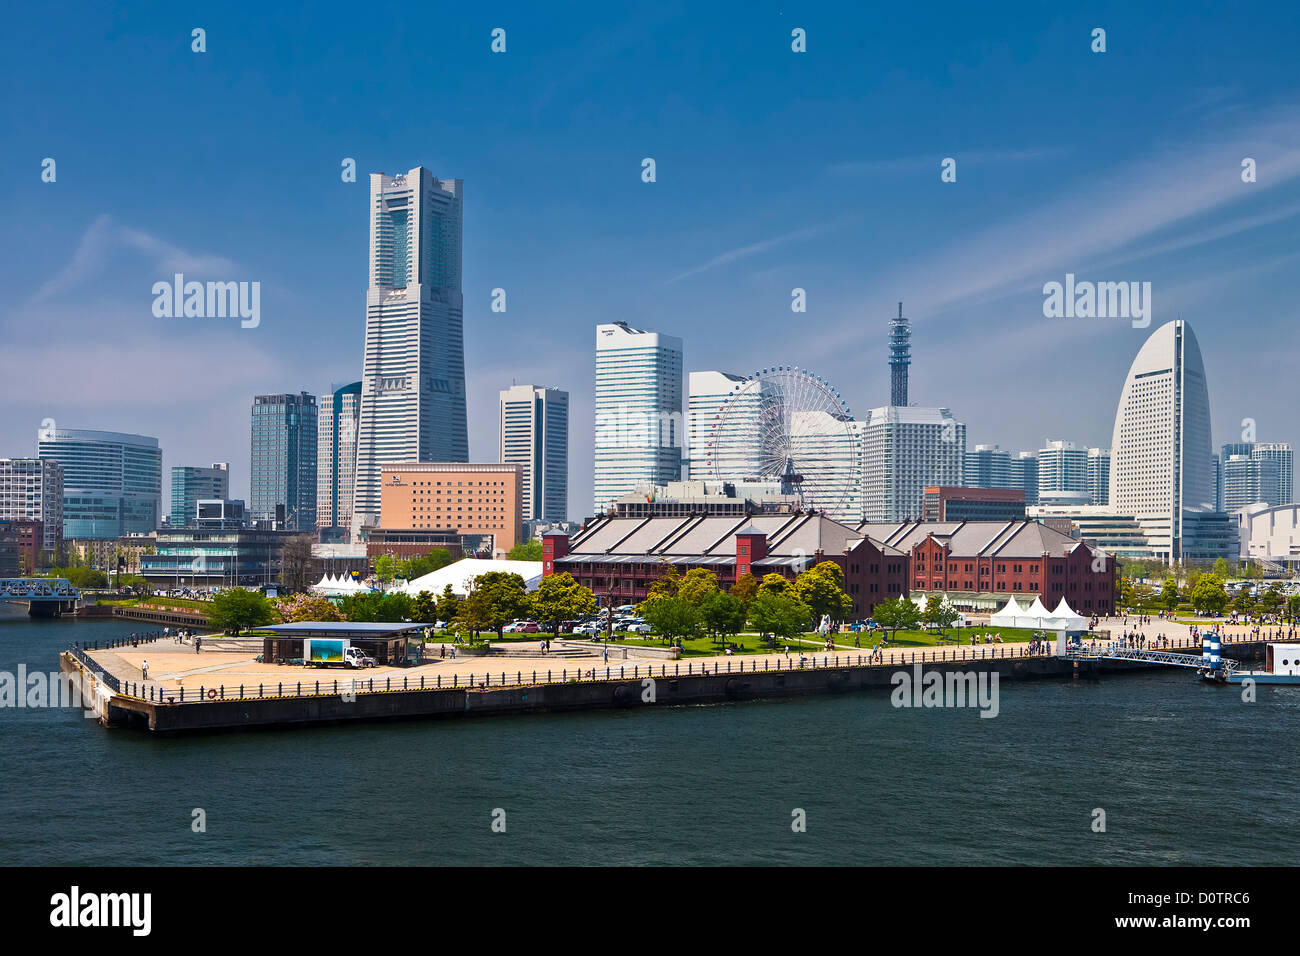 Le Japon, Asie, vacances, voyage, Yokohama, Yokohama, Ville skyline, monument, Bâtiment, Harbour, port Photo Stock